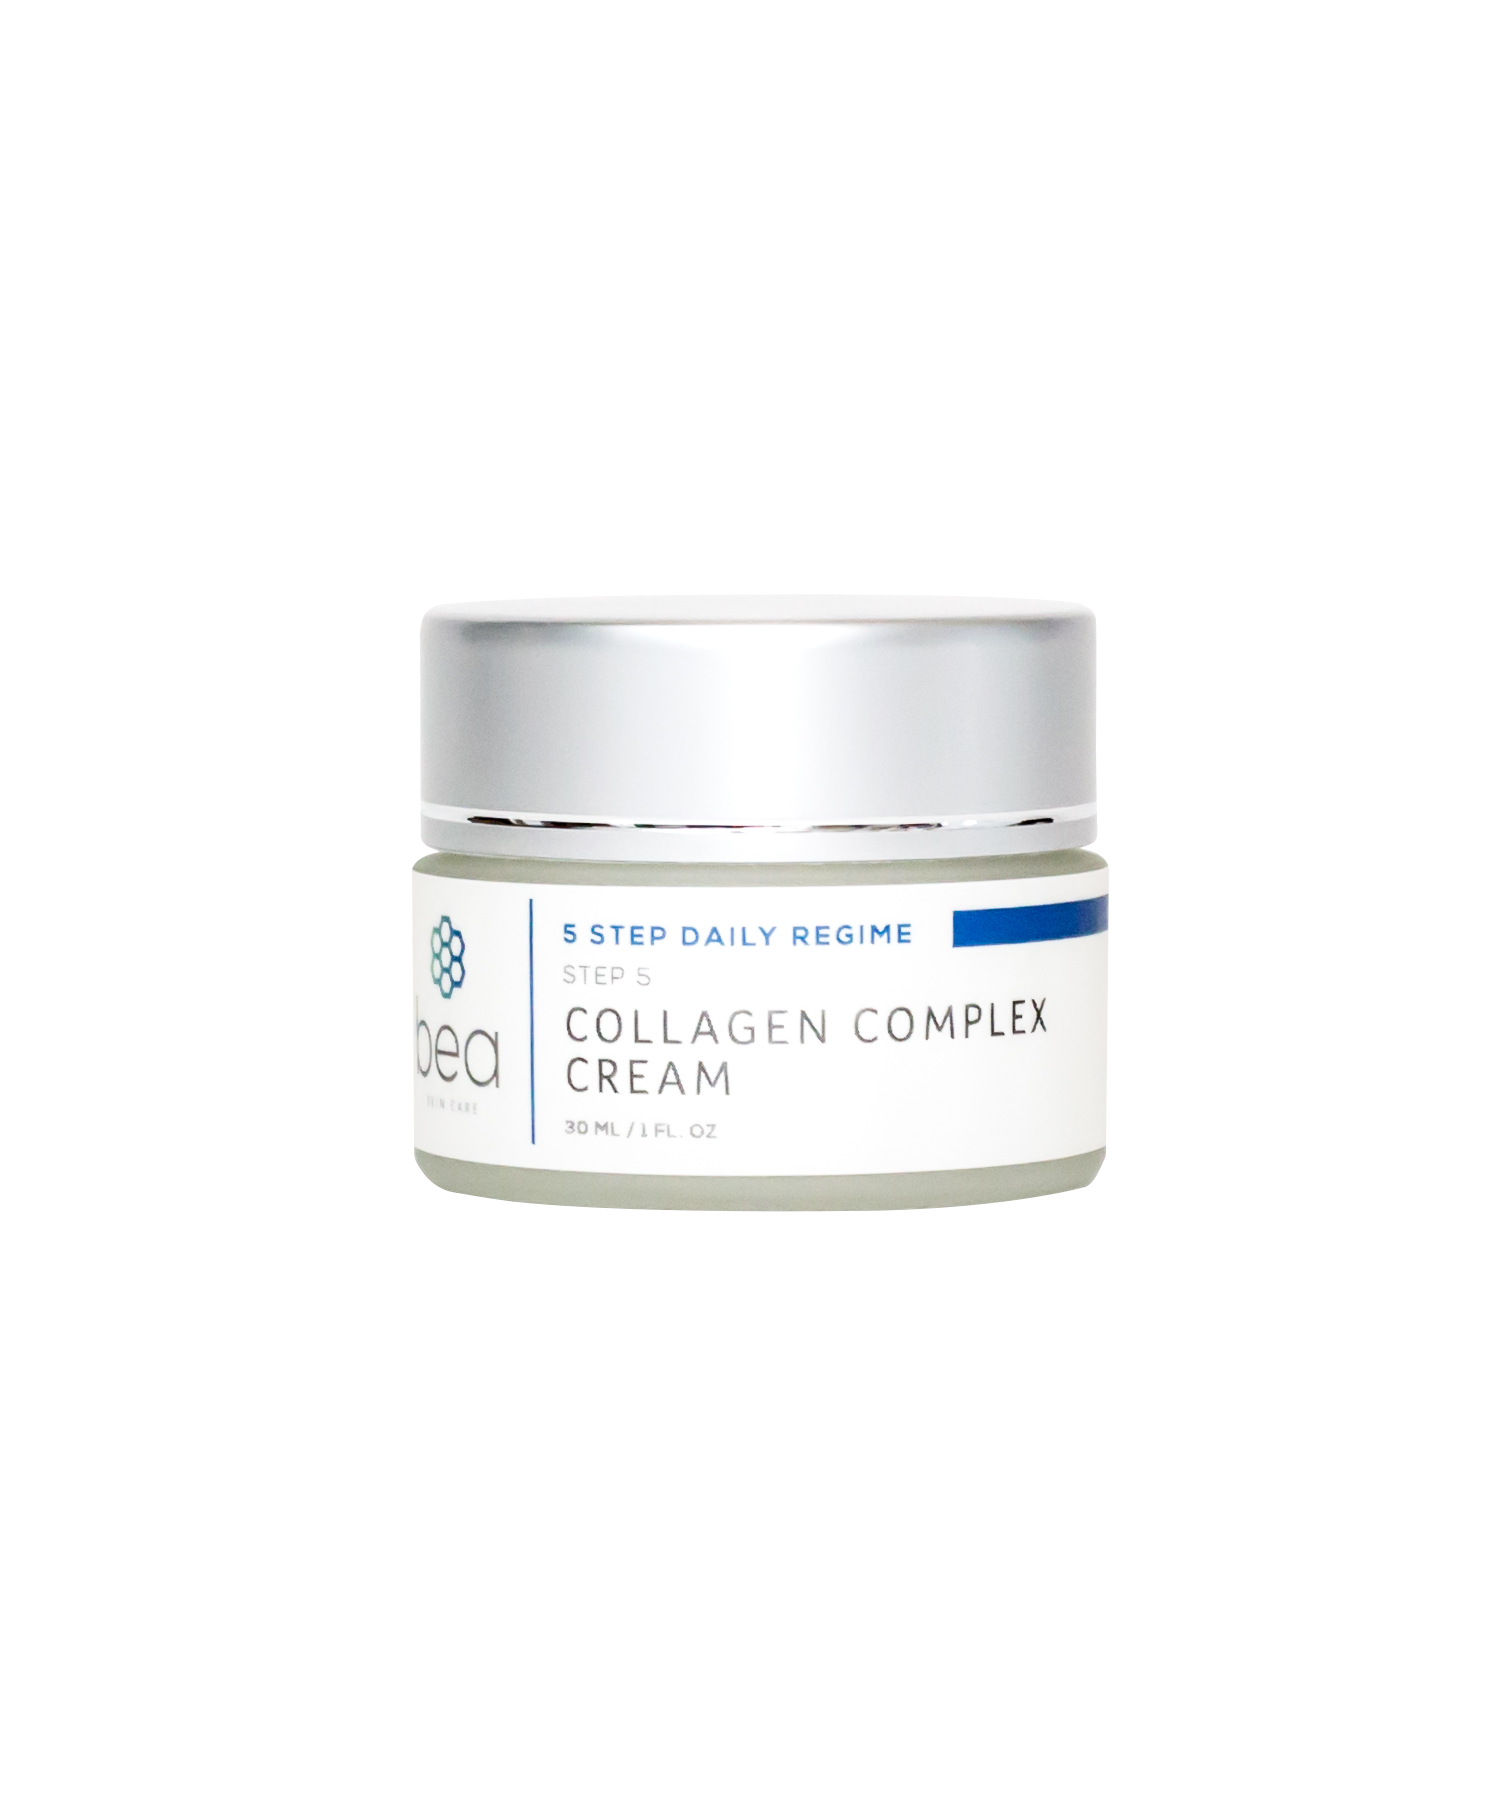 bea - Collagen Complex Cream £44